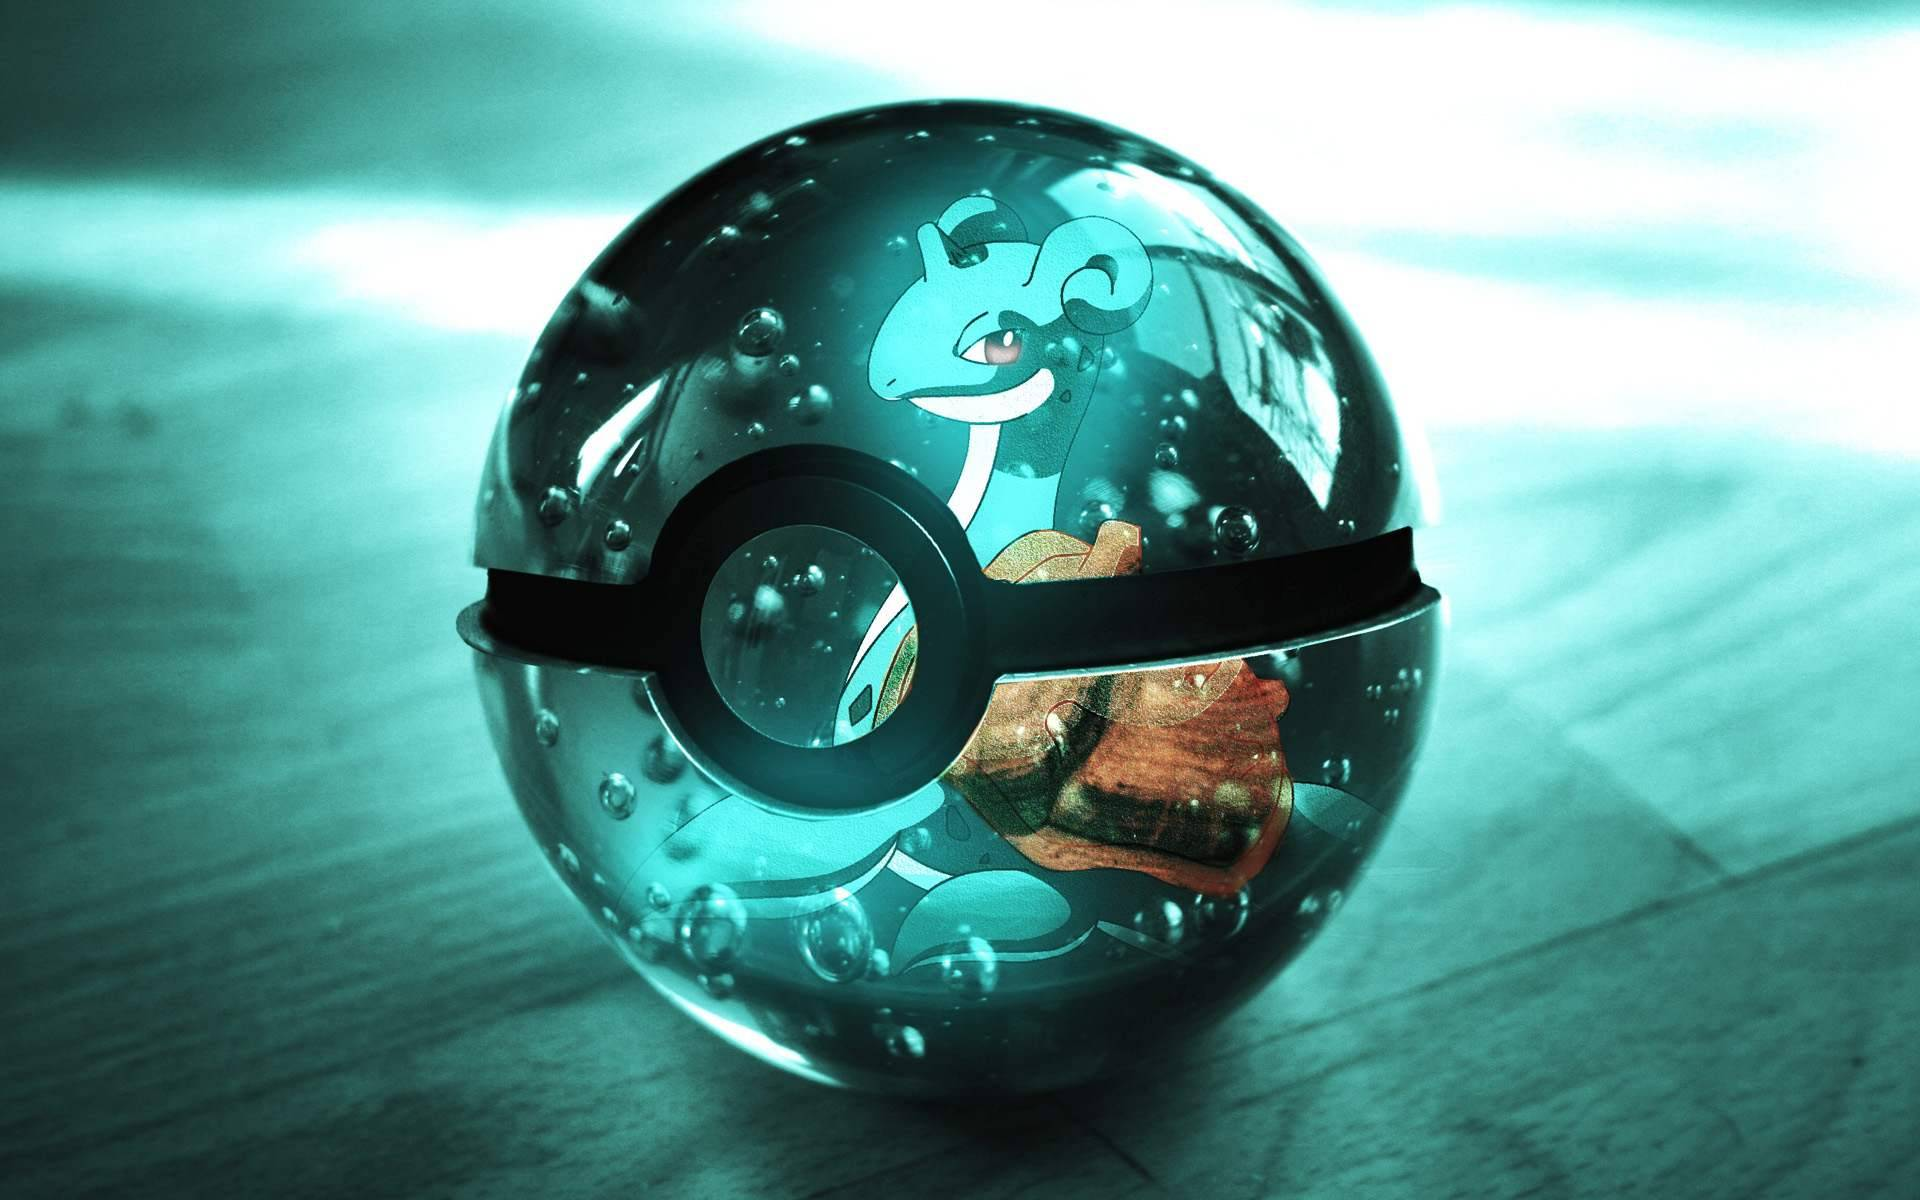 Shiny Pokeball Shiny Pokeball with Lapras on it 1920x1200